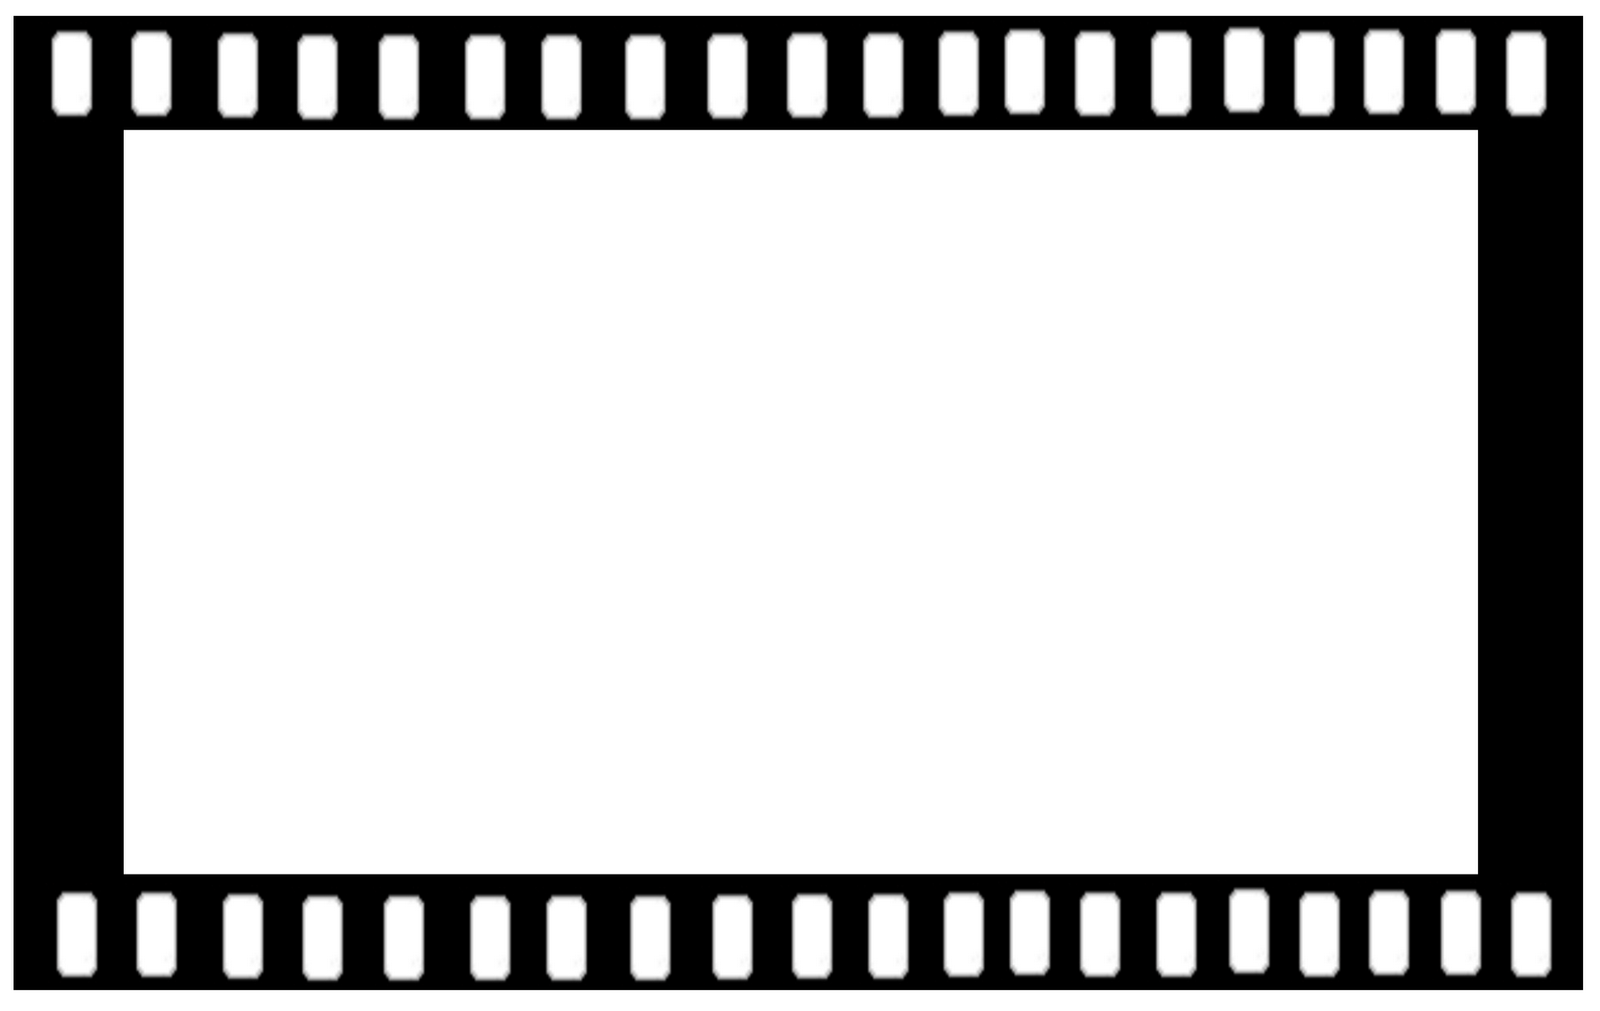 Filmstrip Hollywood Frame Film Strip Free Transparent Image HD PNG Image